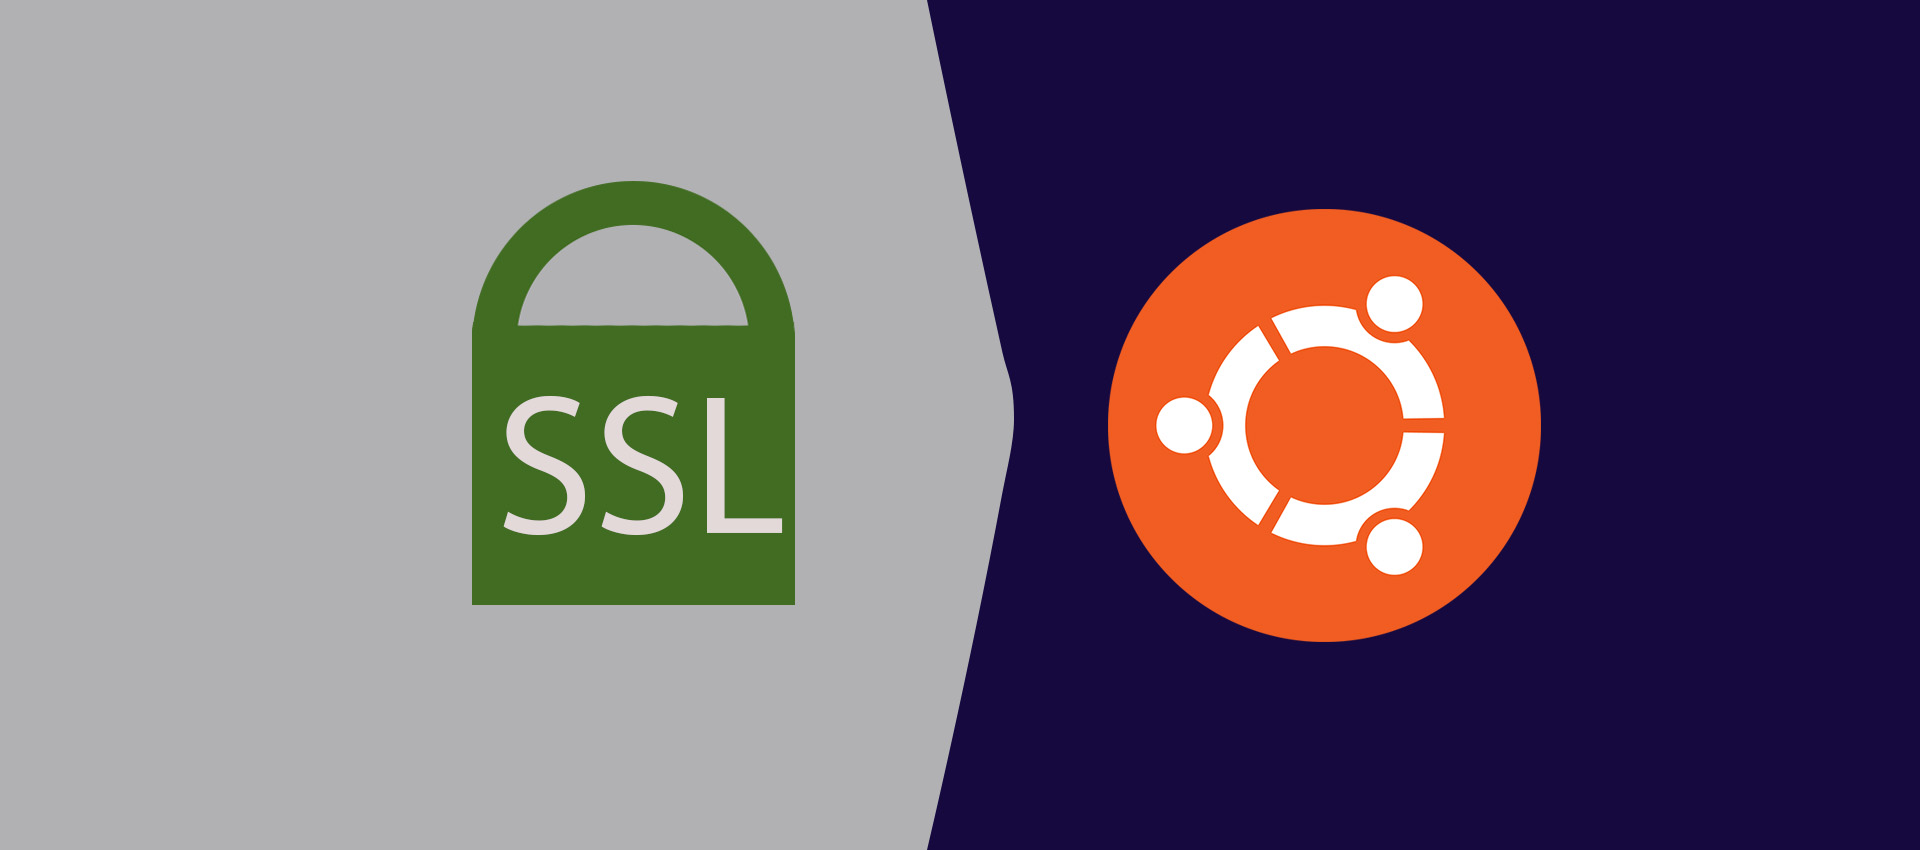 Install Self-Signed SSL Certificate Using OpenSSL On Ubuntu 20.04 LTS